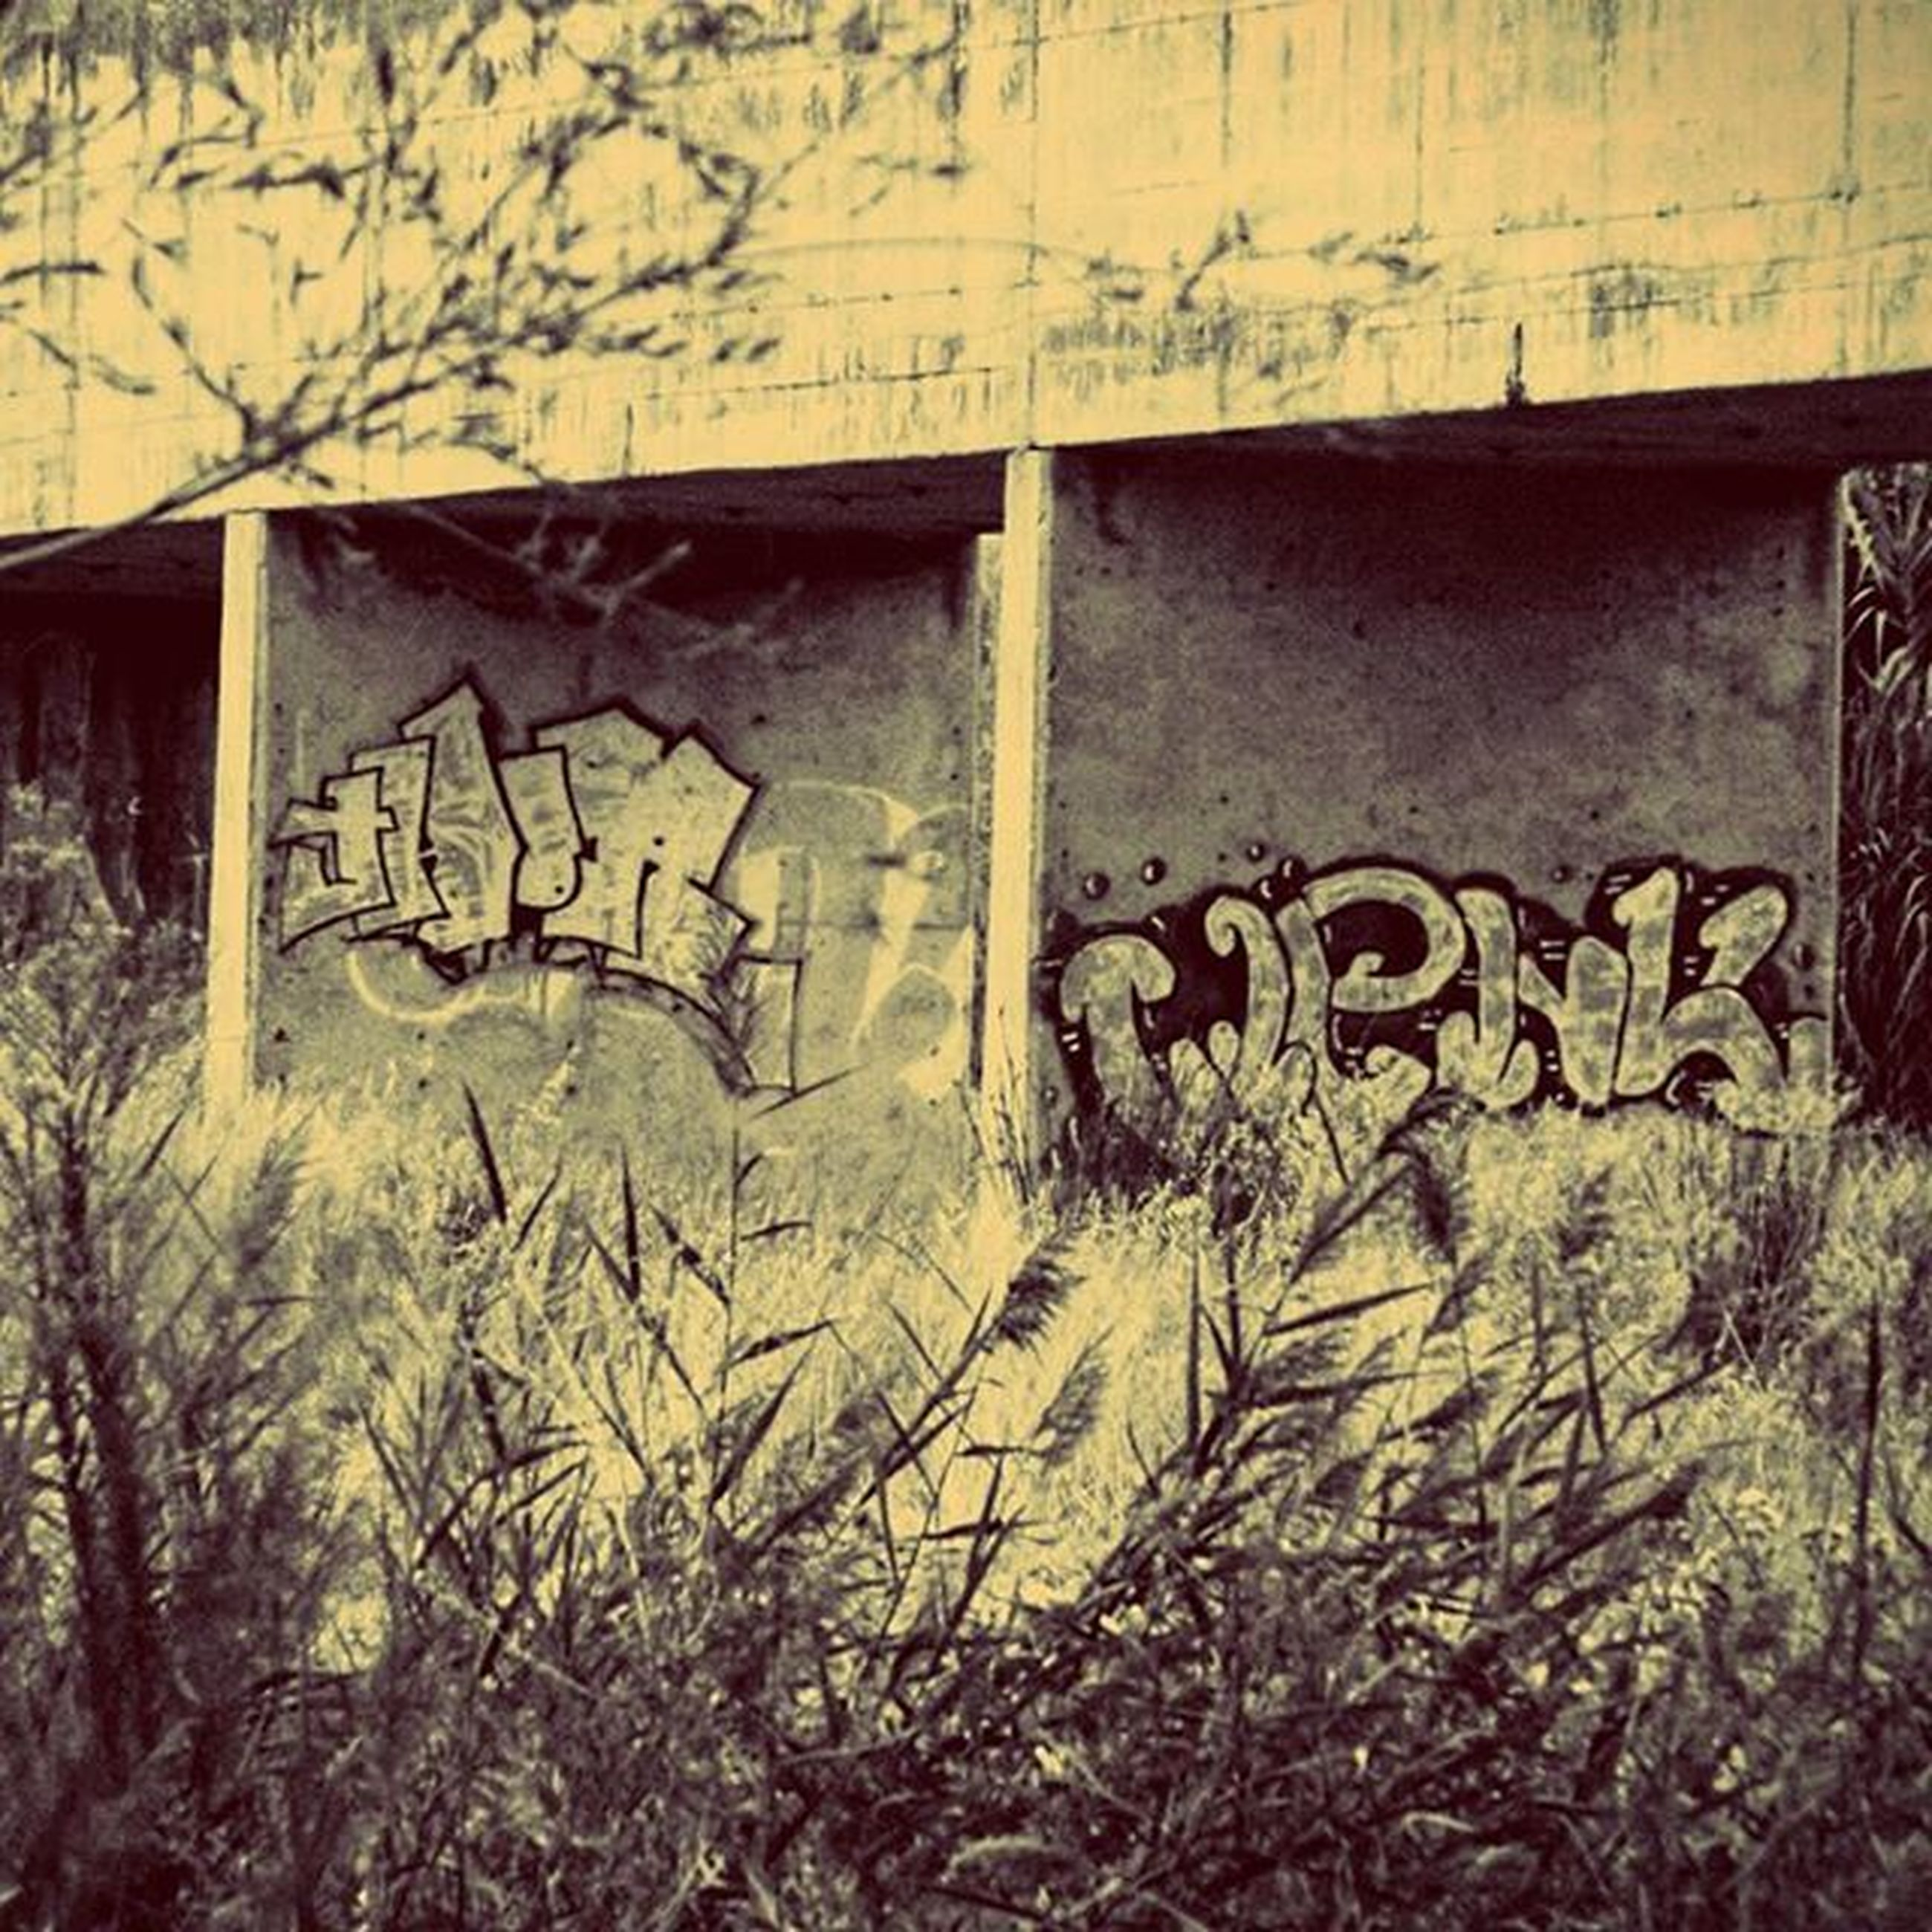 graffiti, architecture, built structure, abandoned, damaged, wall - building feature, building exterior, obsolete, run-down, deterioration, weathered, old, wall, text, bad condition, house, day, no people, western script, outdoors